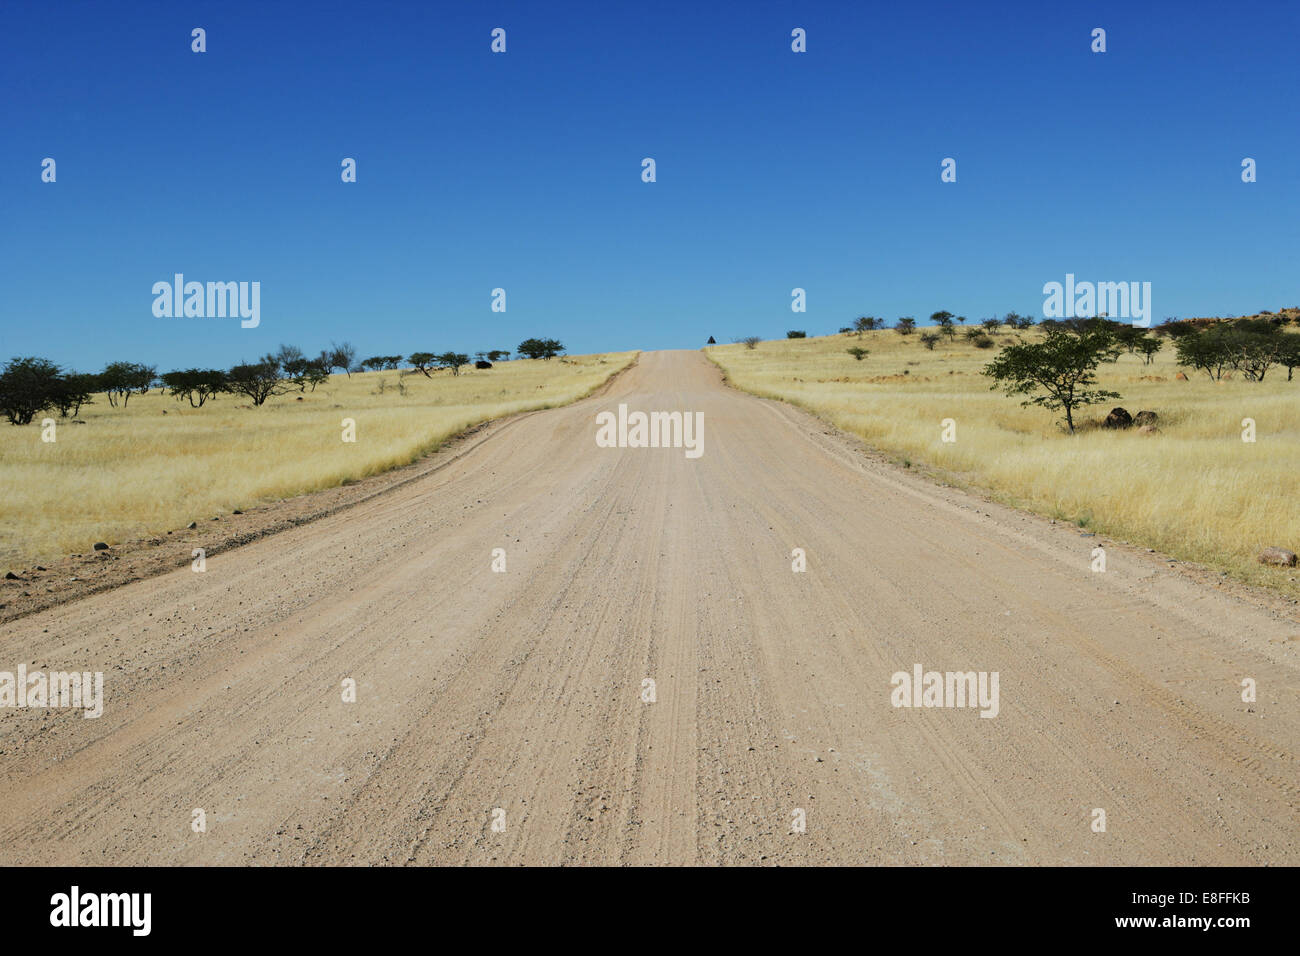 Empty road through desert, Namibia - Stock Image